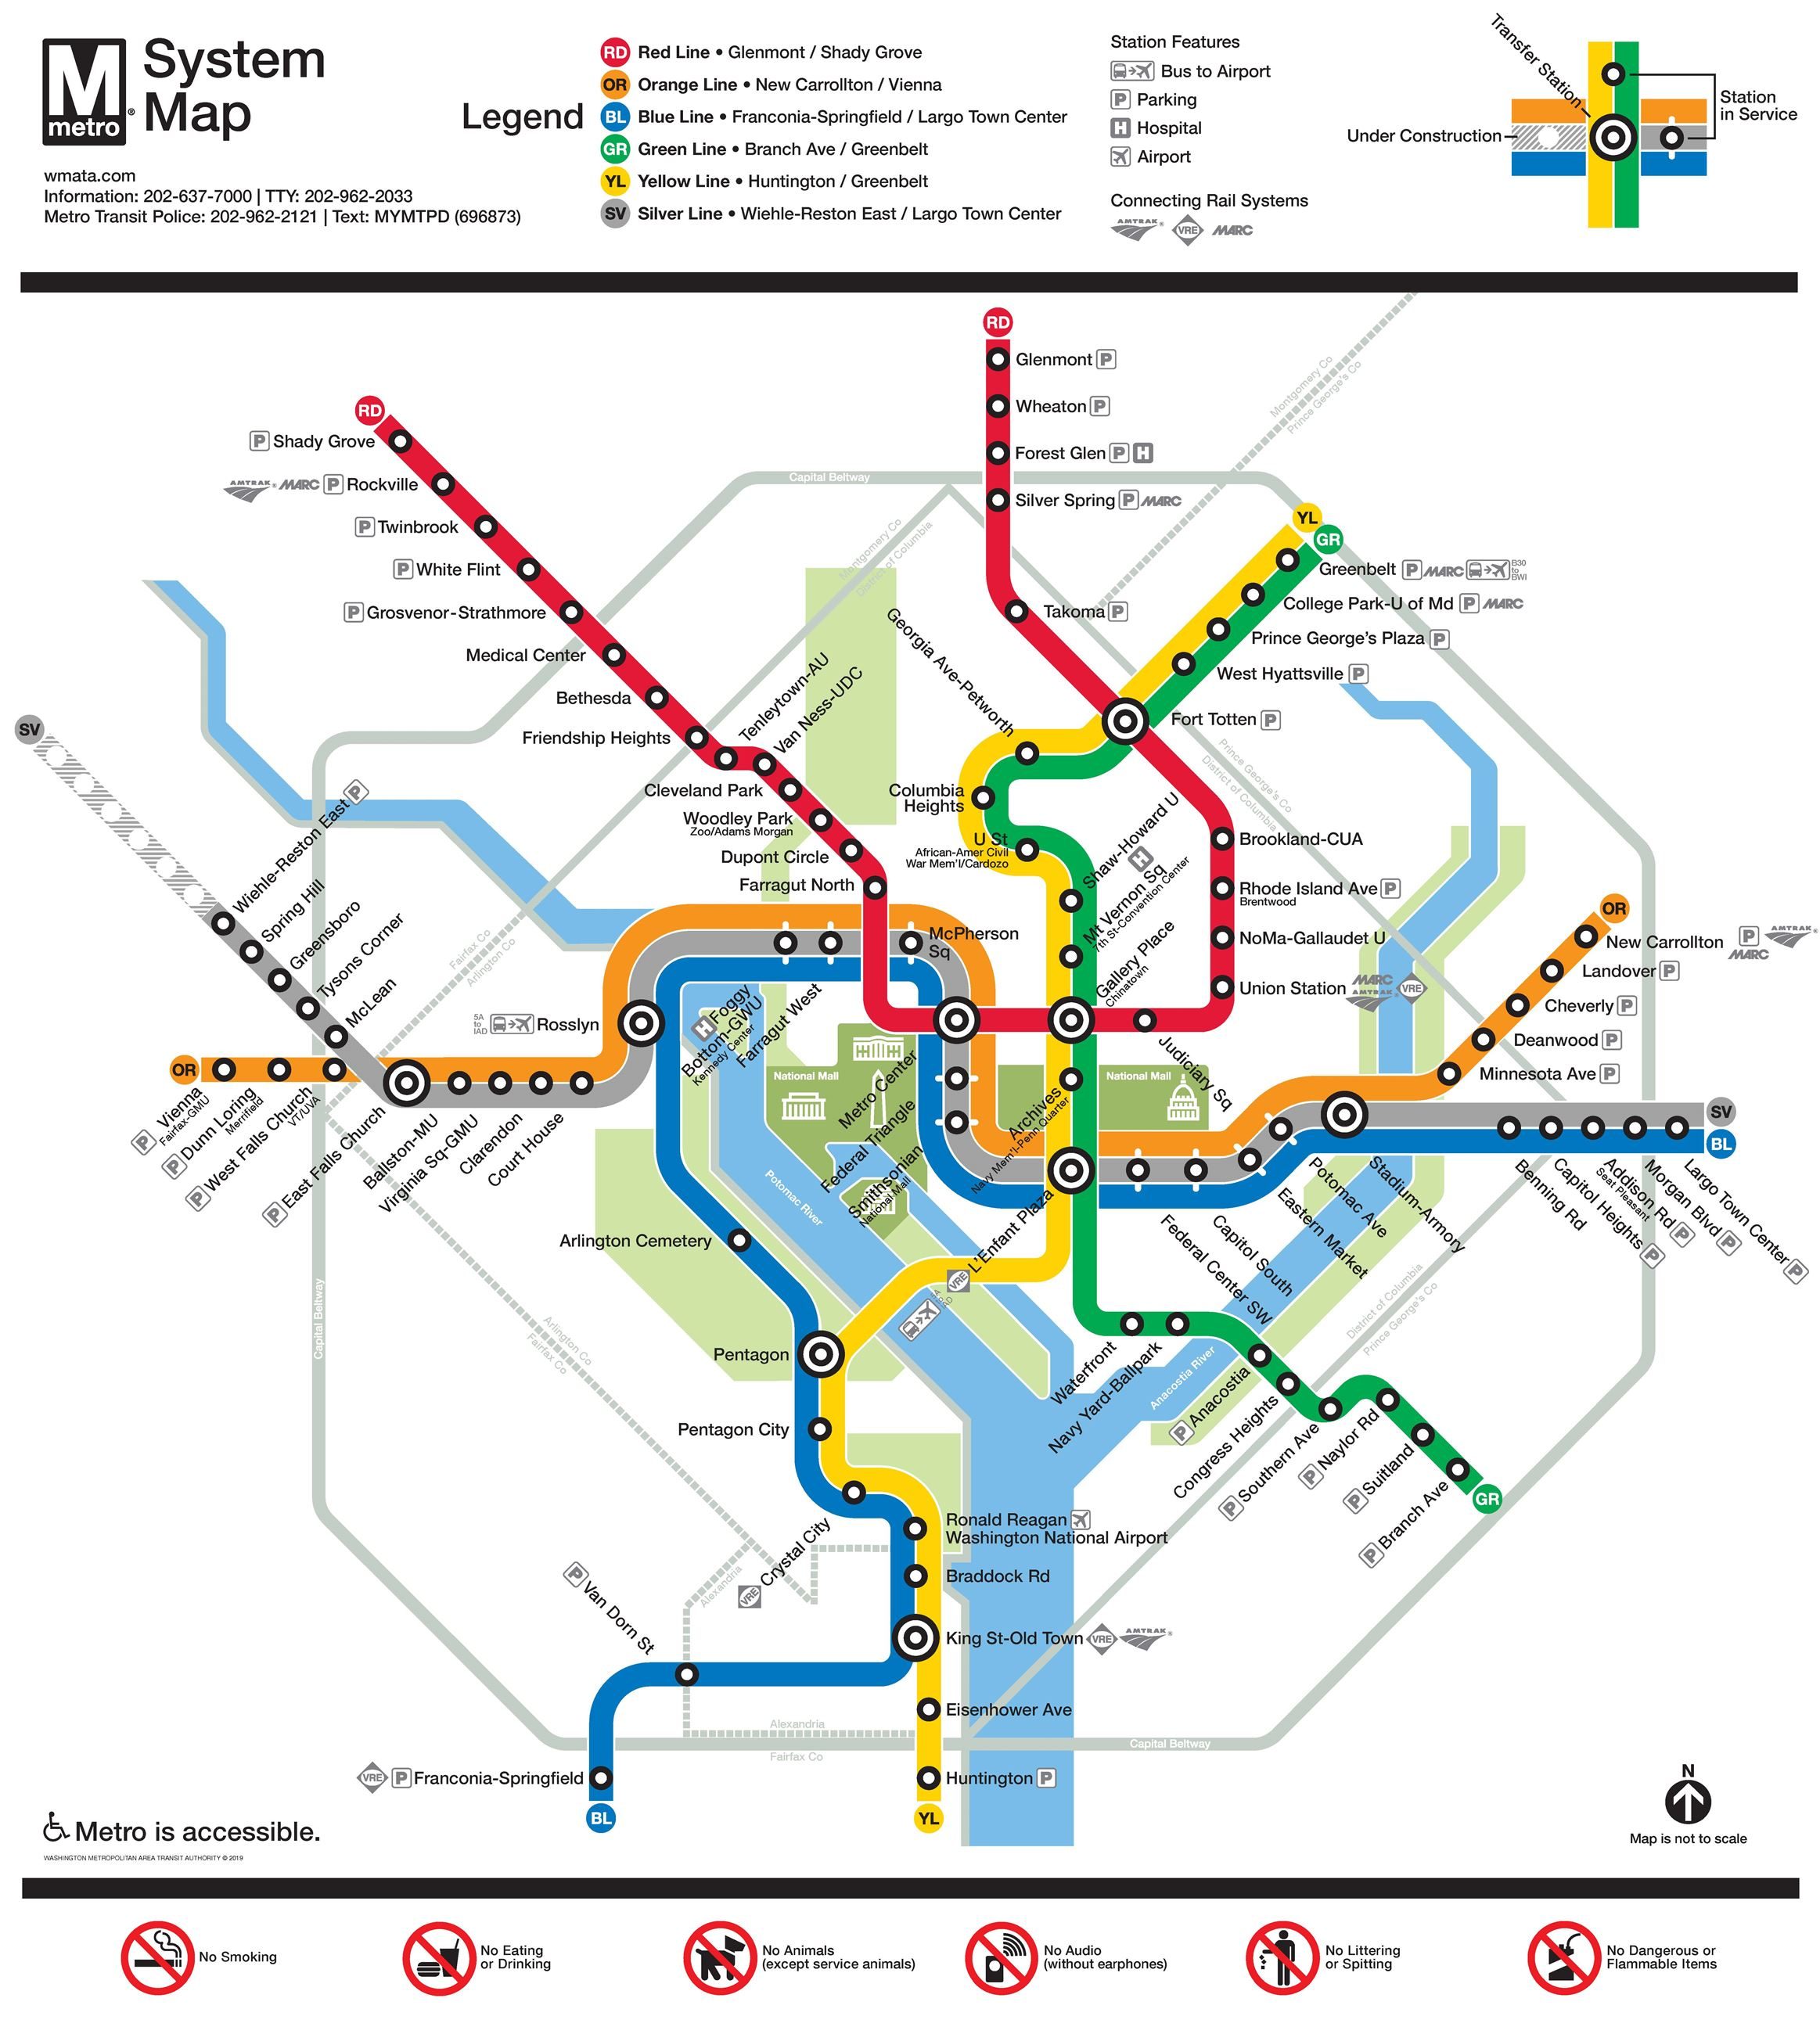 Small map of the DC Meto with colors showing different lines Opens in new window